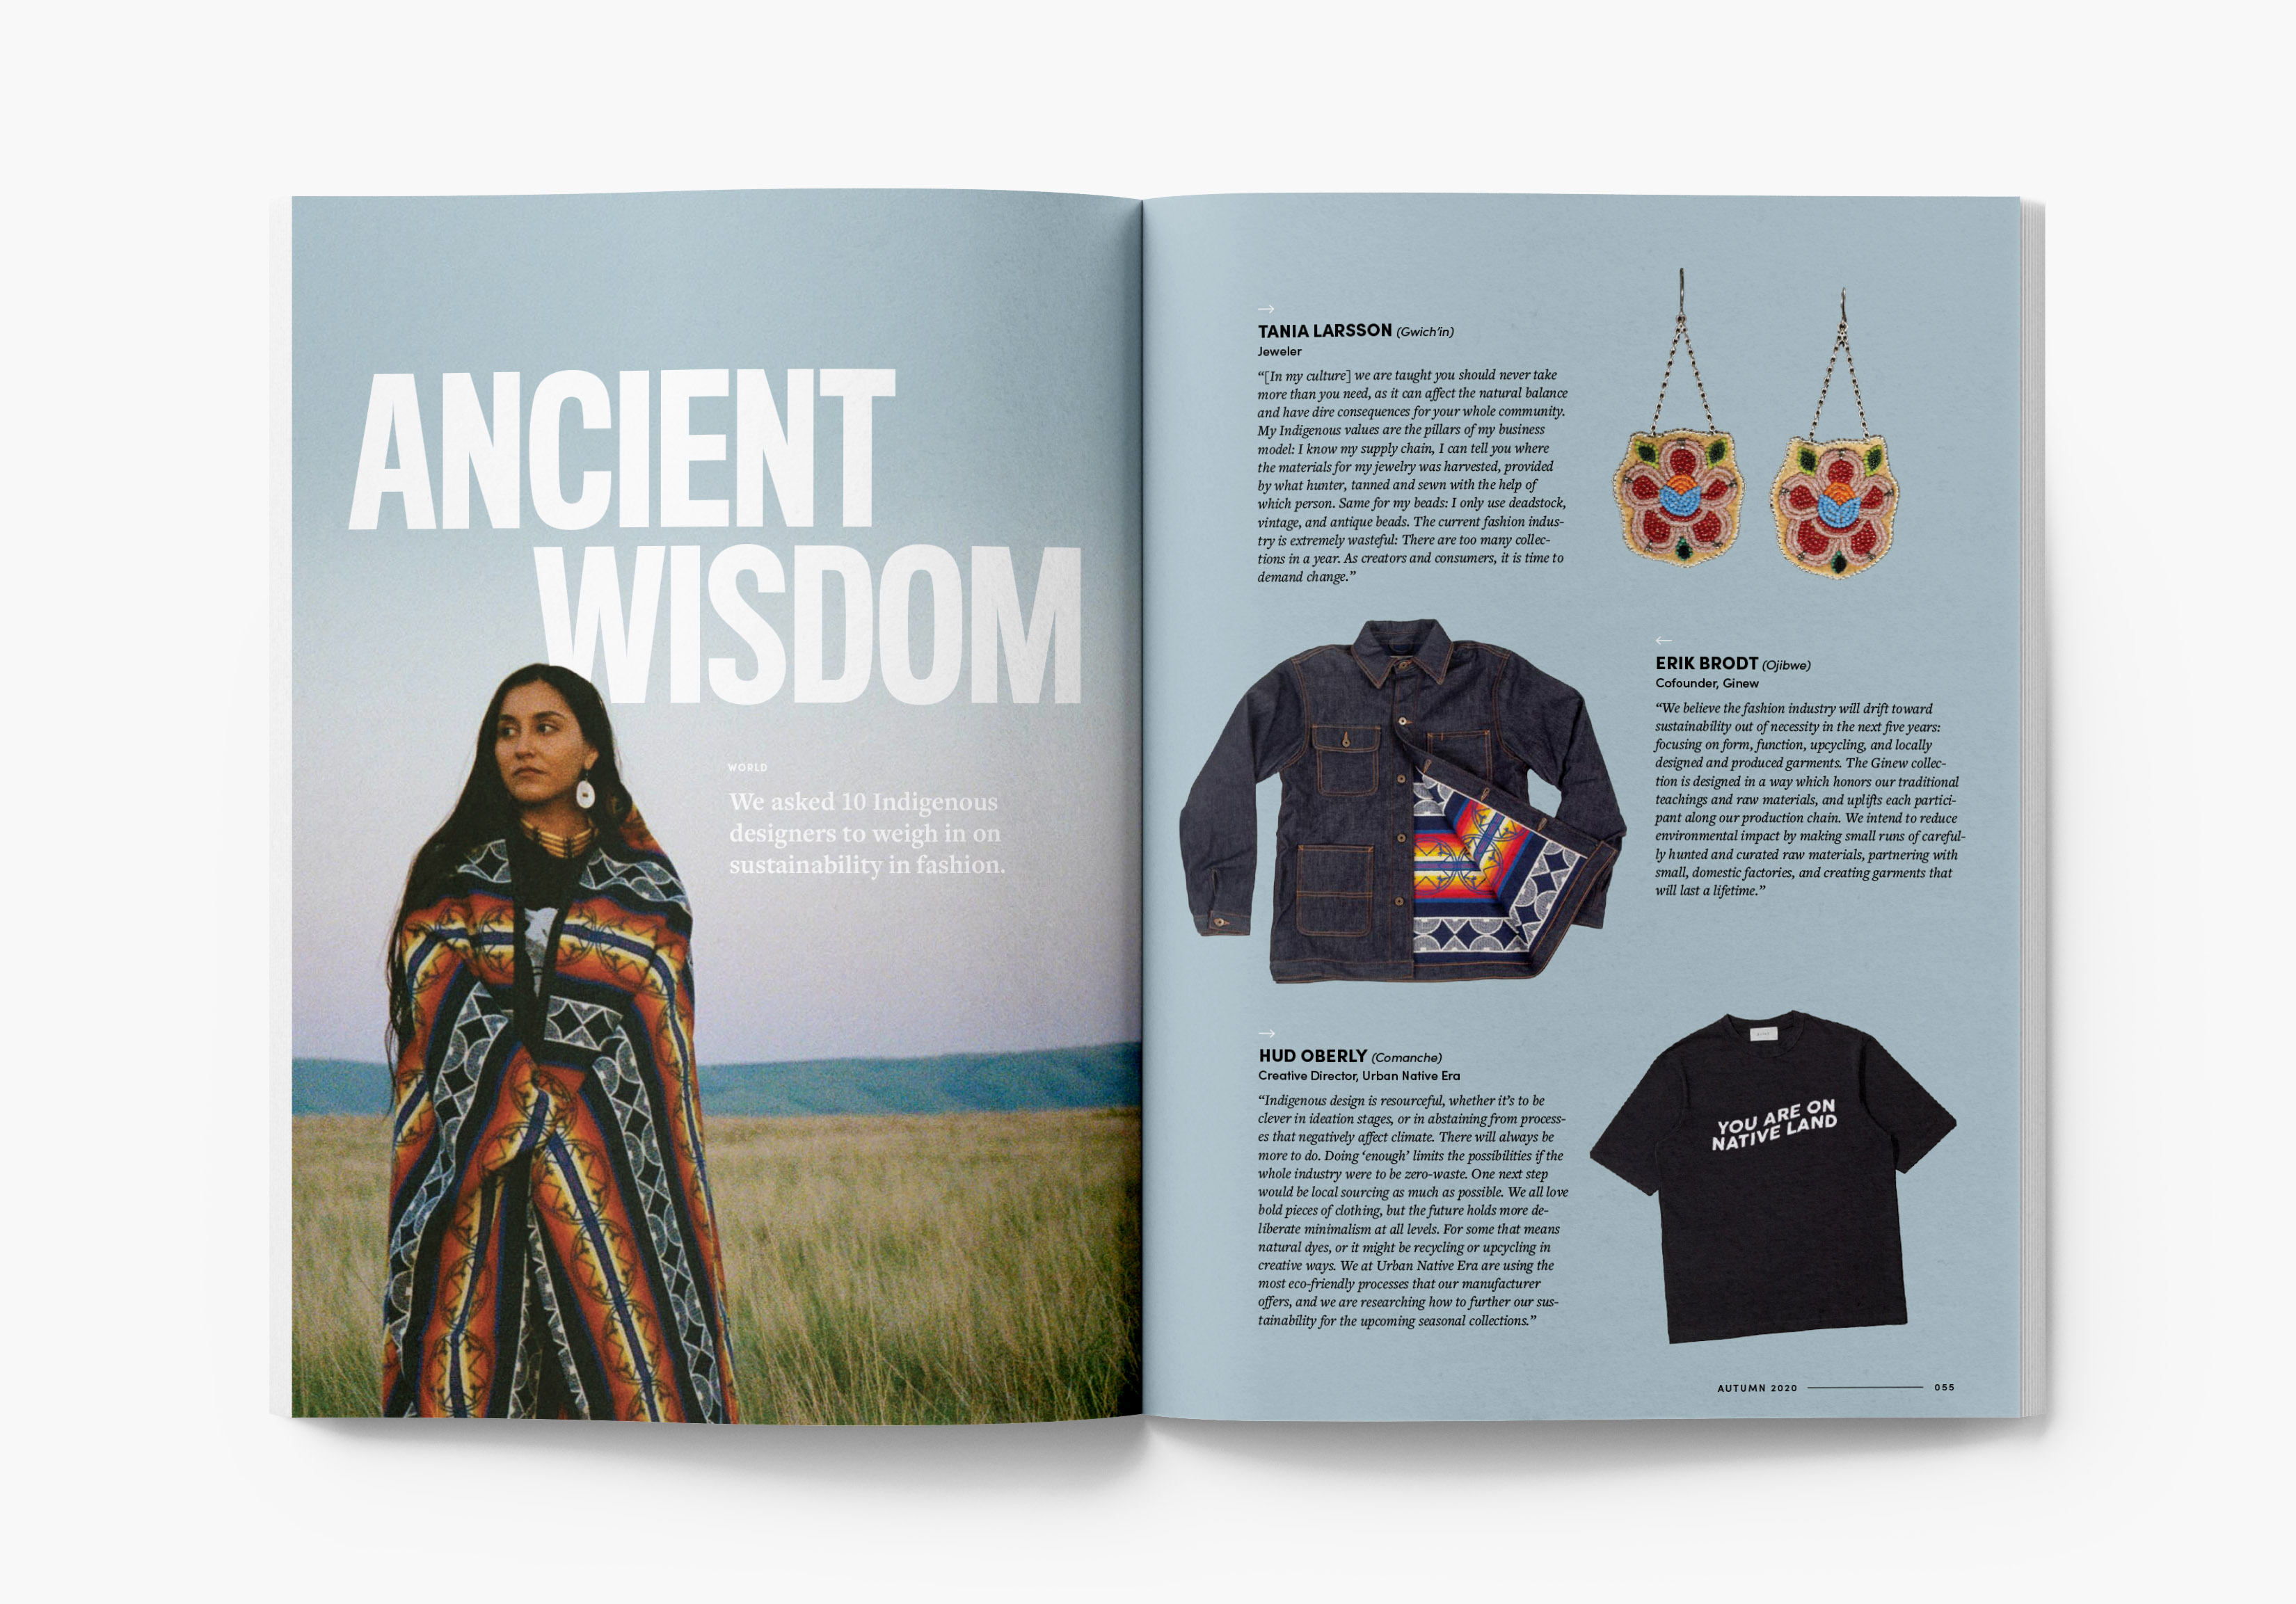 Magazine spread showing interviews with Indigenous designers